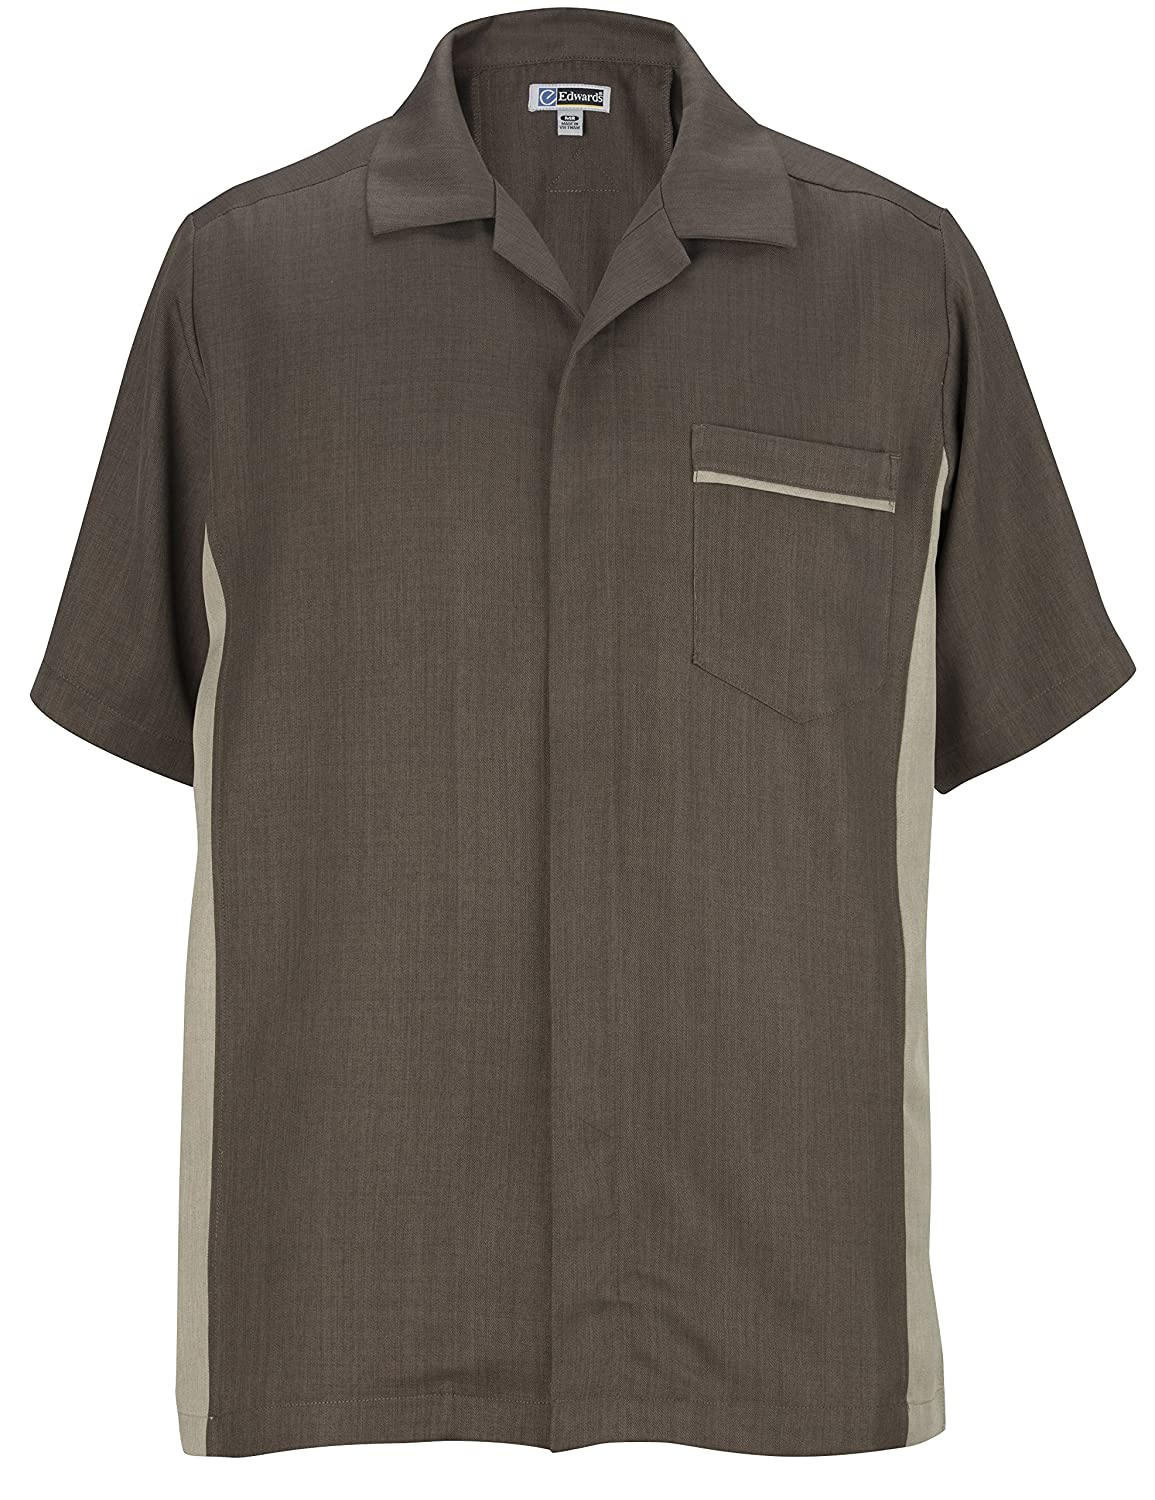 Averill's Sharper Uniforms APPAREL メンズ Chestnut/Cobblestone M  B07482QJ9C